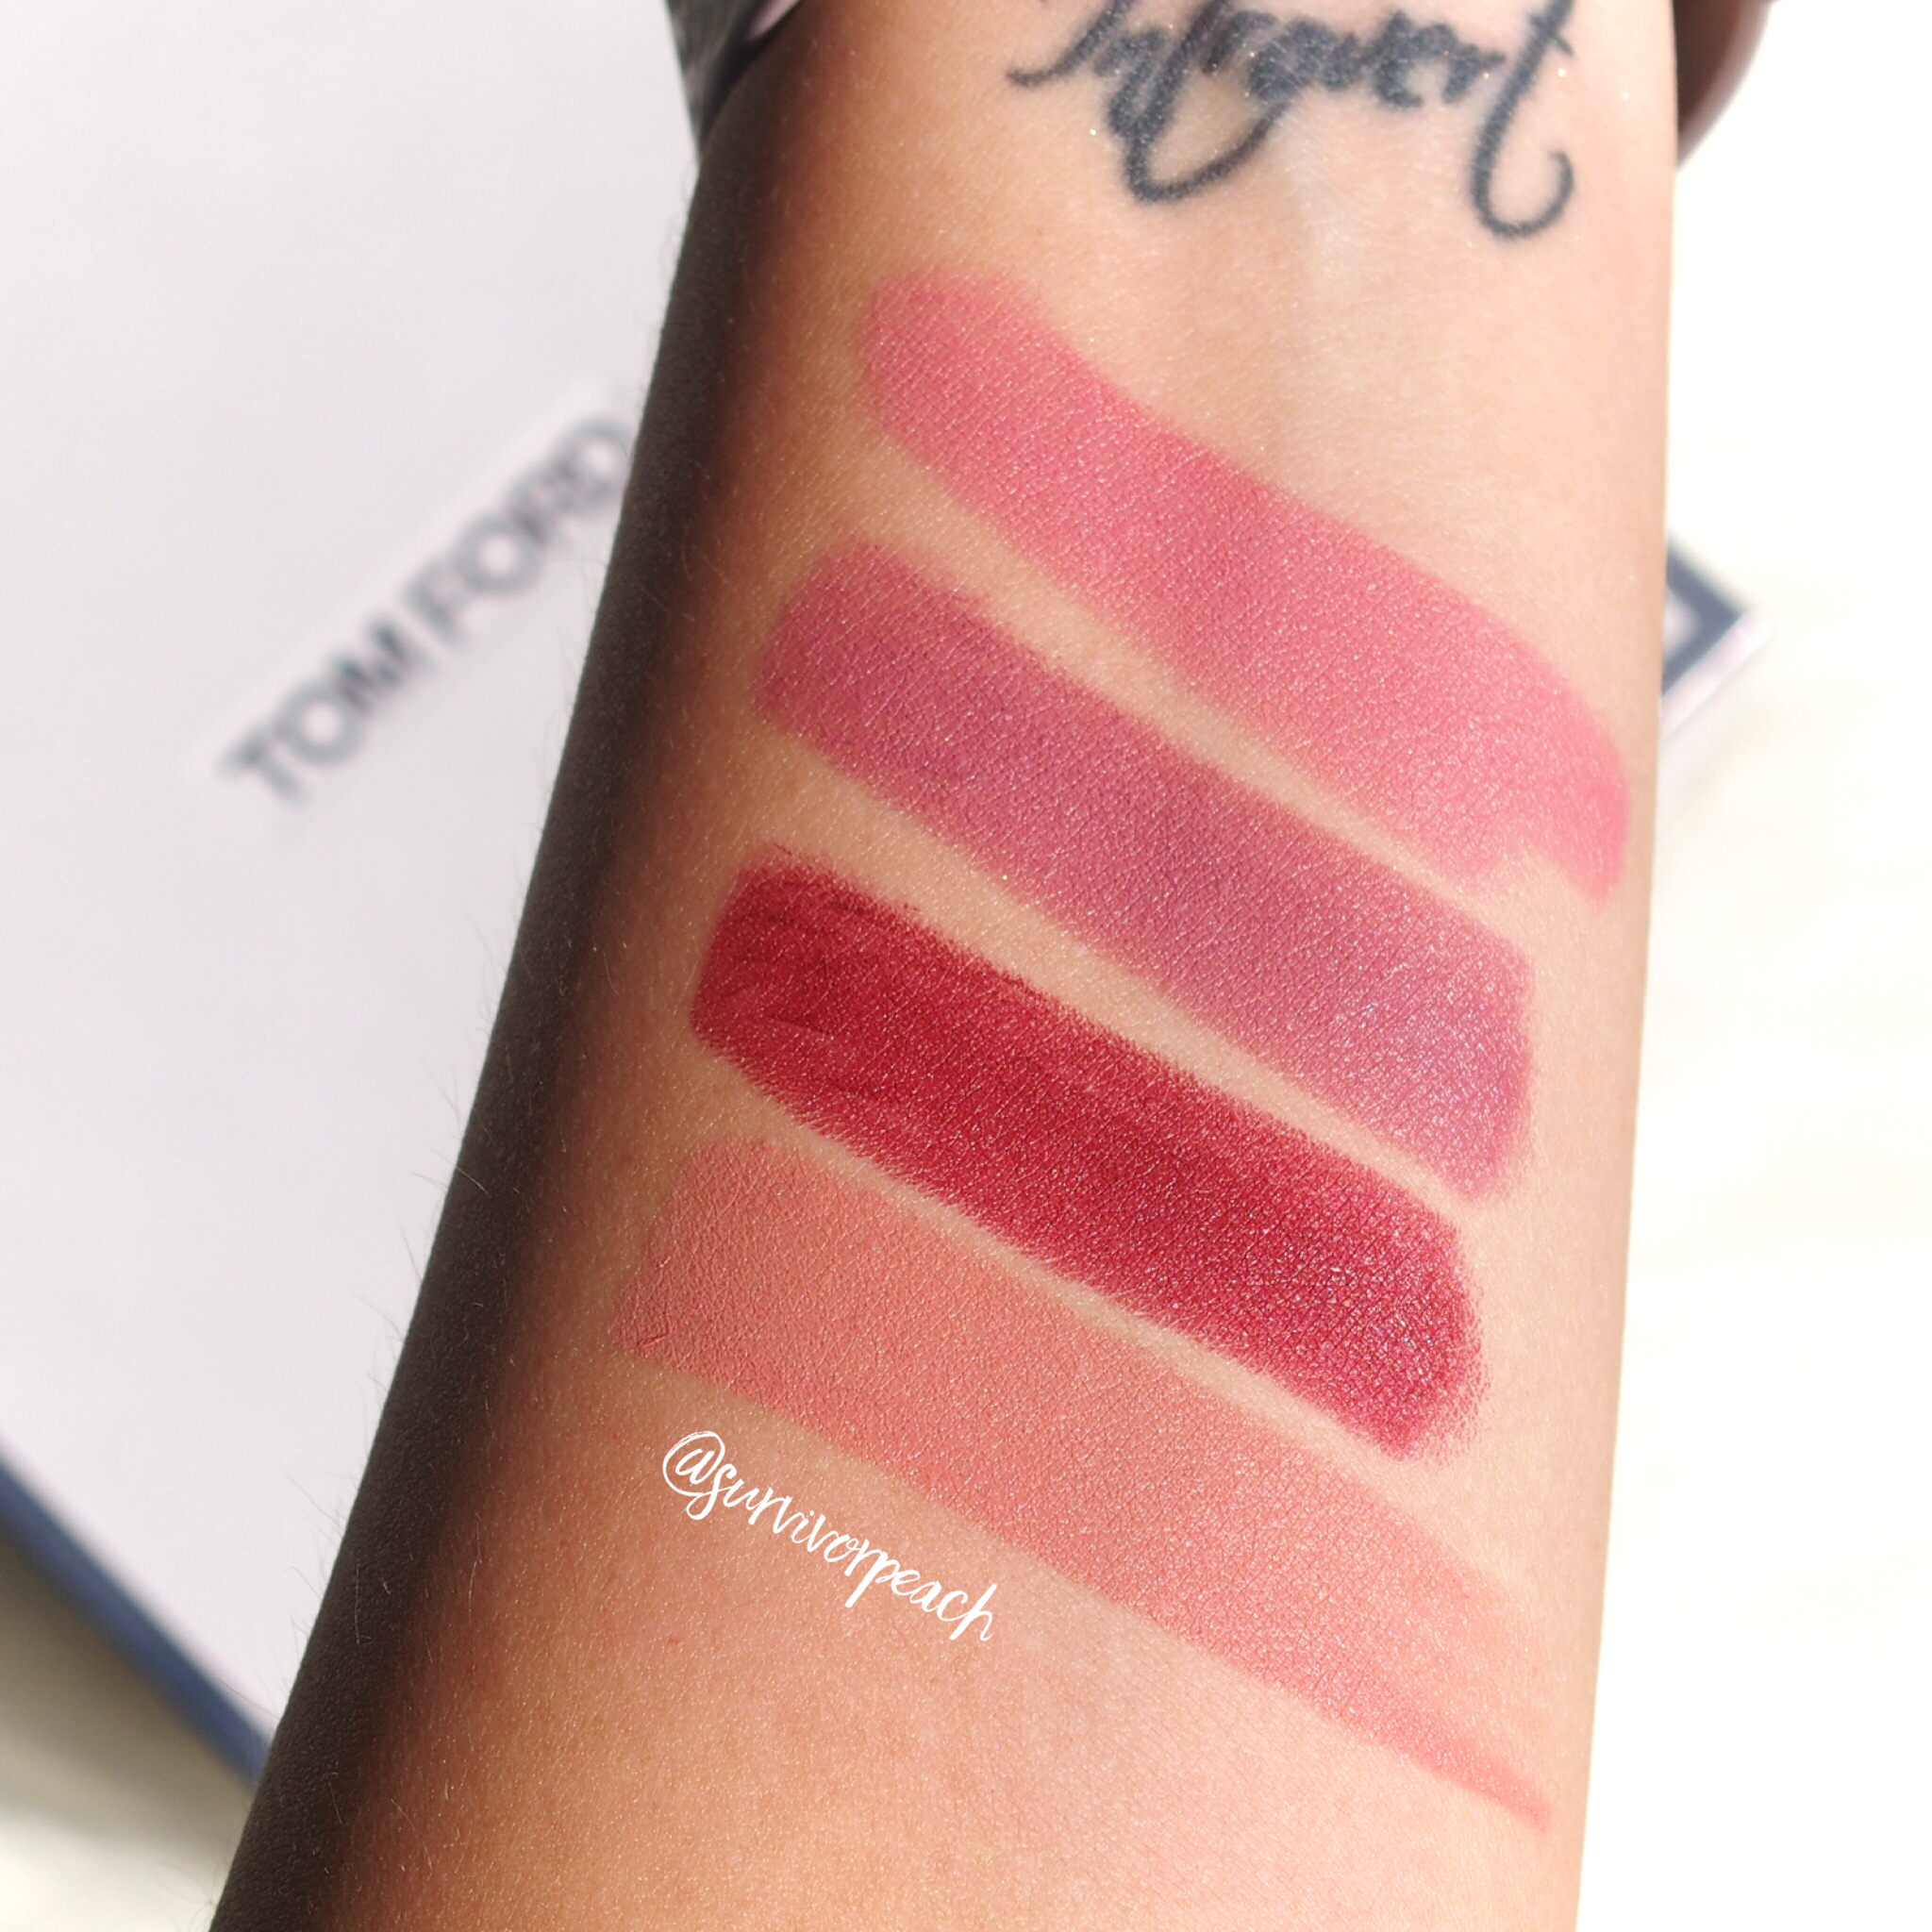 Swatches of the Tom Ford Matte Lipsticks in Pink Tease, Pussycat, Velvet Cherry, First Time